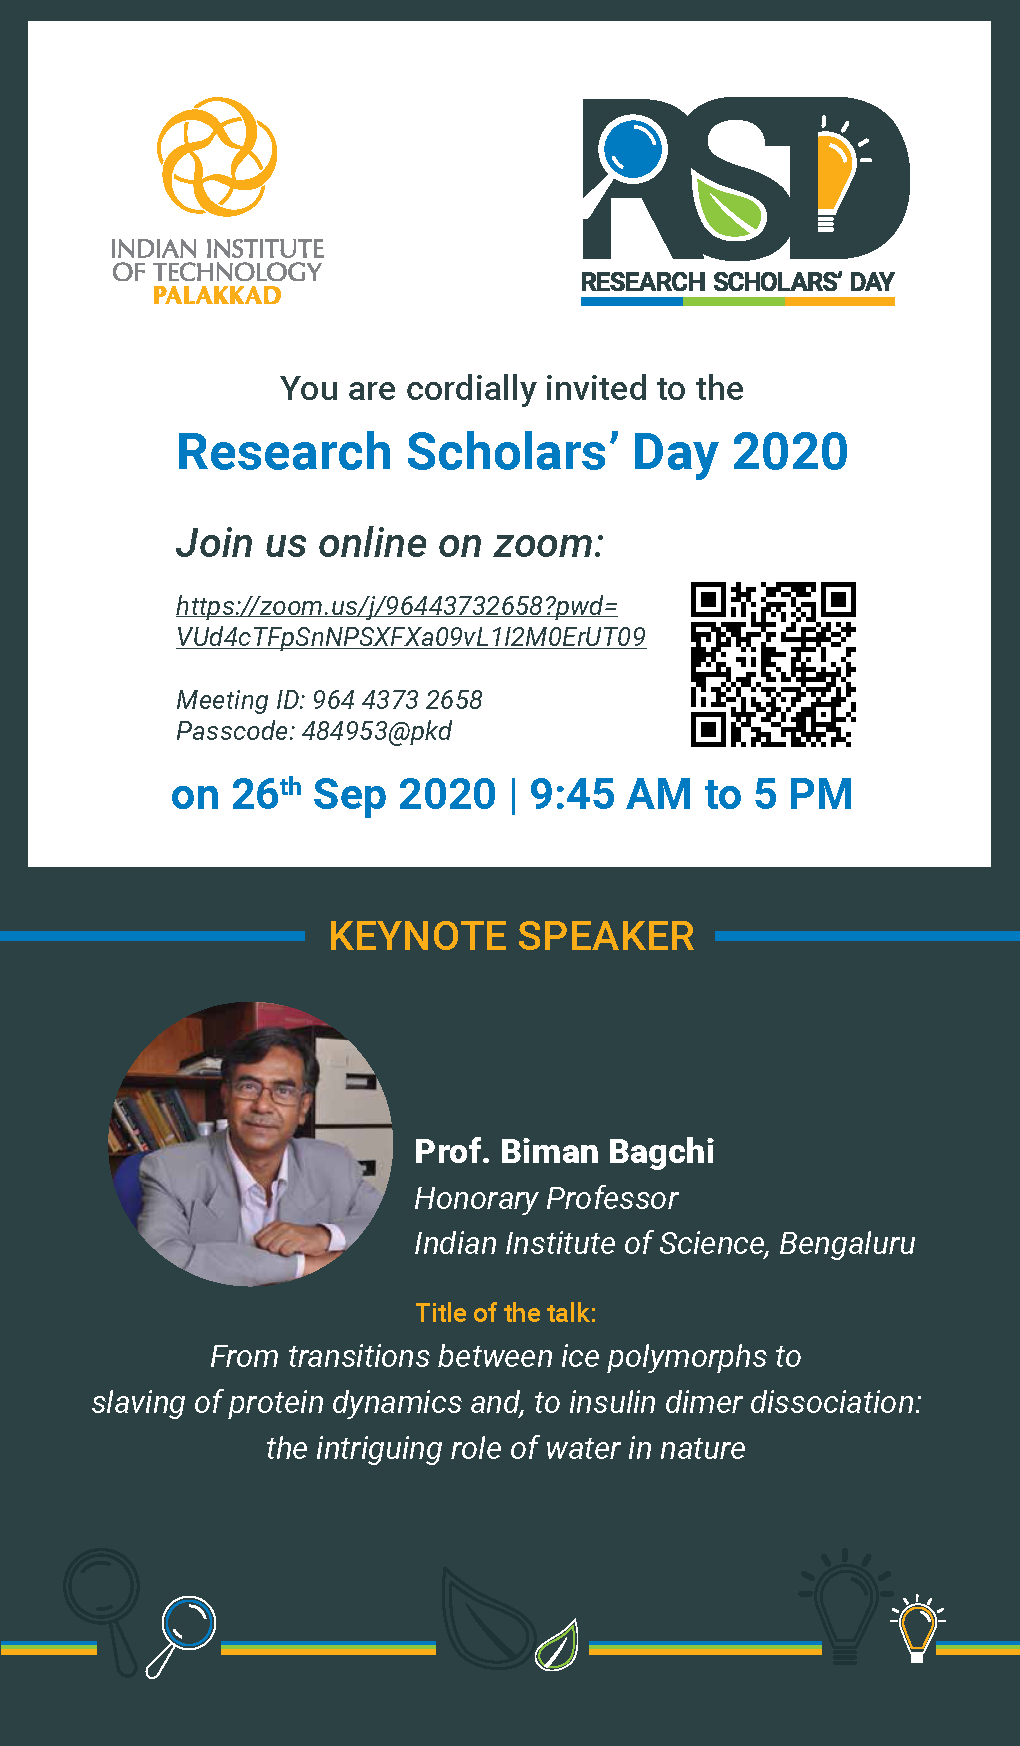 The event has Keynote talk by Prof Biman Bagchi, FASc, FNA, FTWAS, FNASc, Honorary Professor , IISc Bangalore, followed by three institute faculty talks and eight of our research scholars' talks.